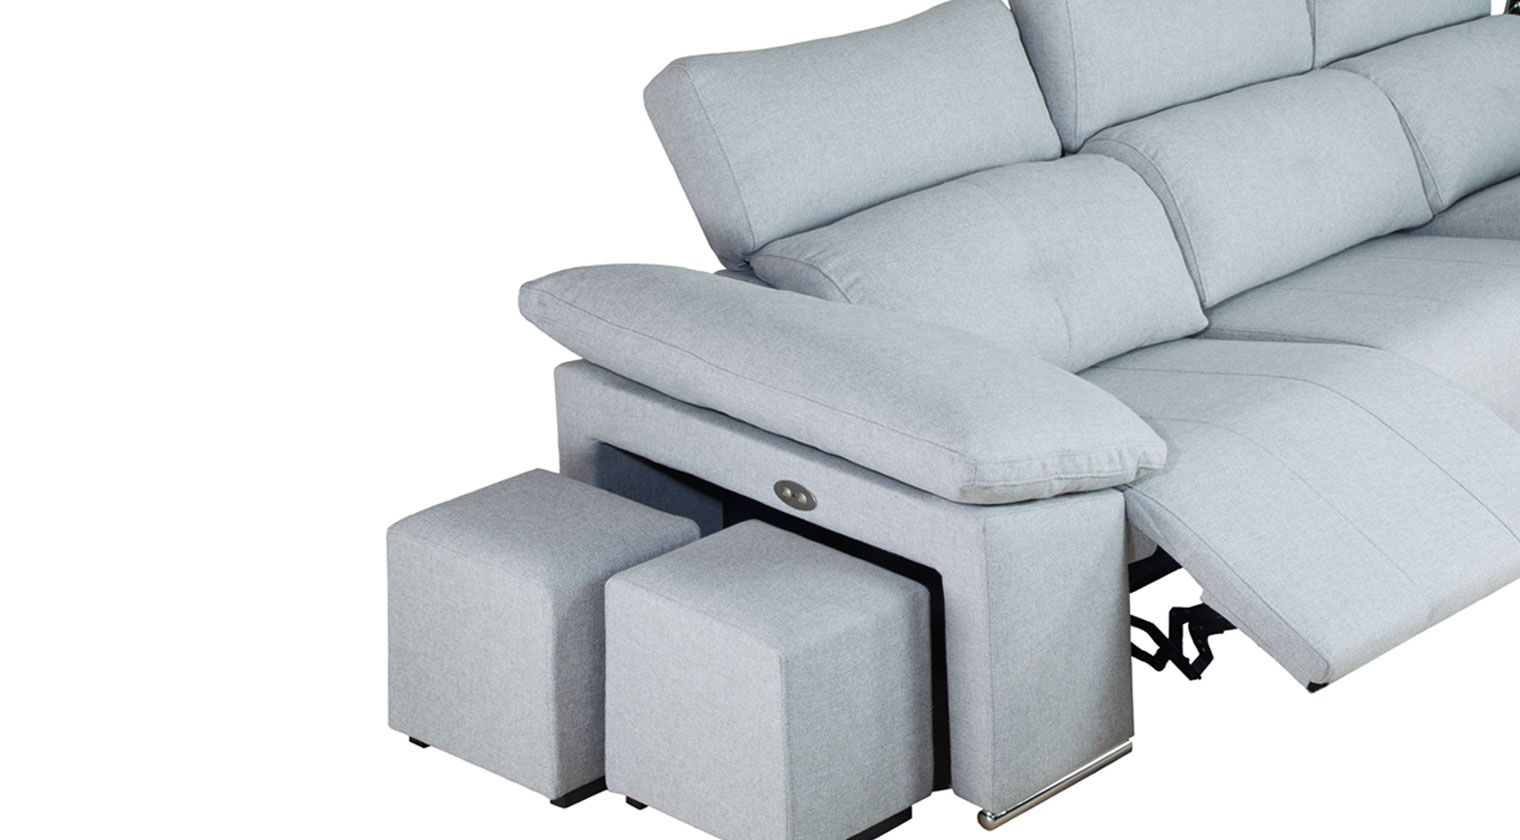 tumb-Chaise-Longue-Relax-CALIPSO-5